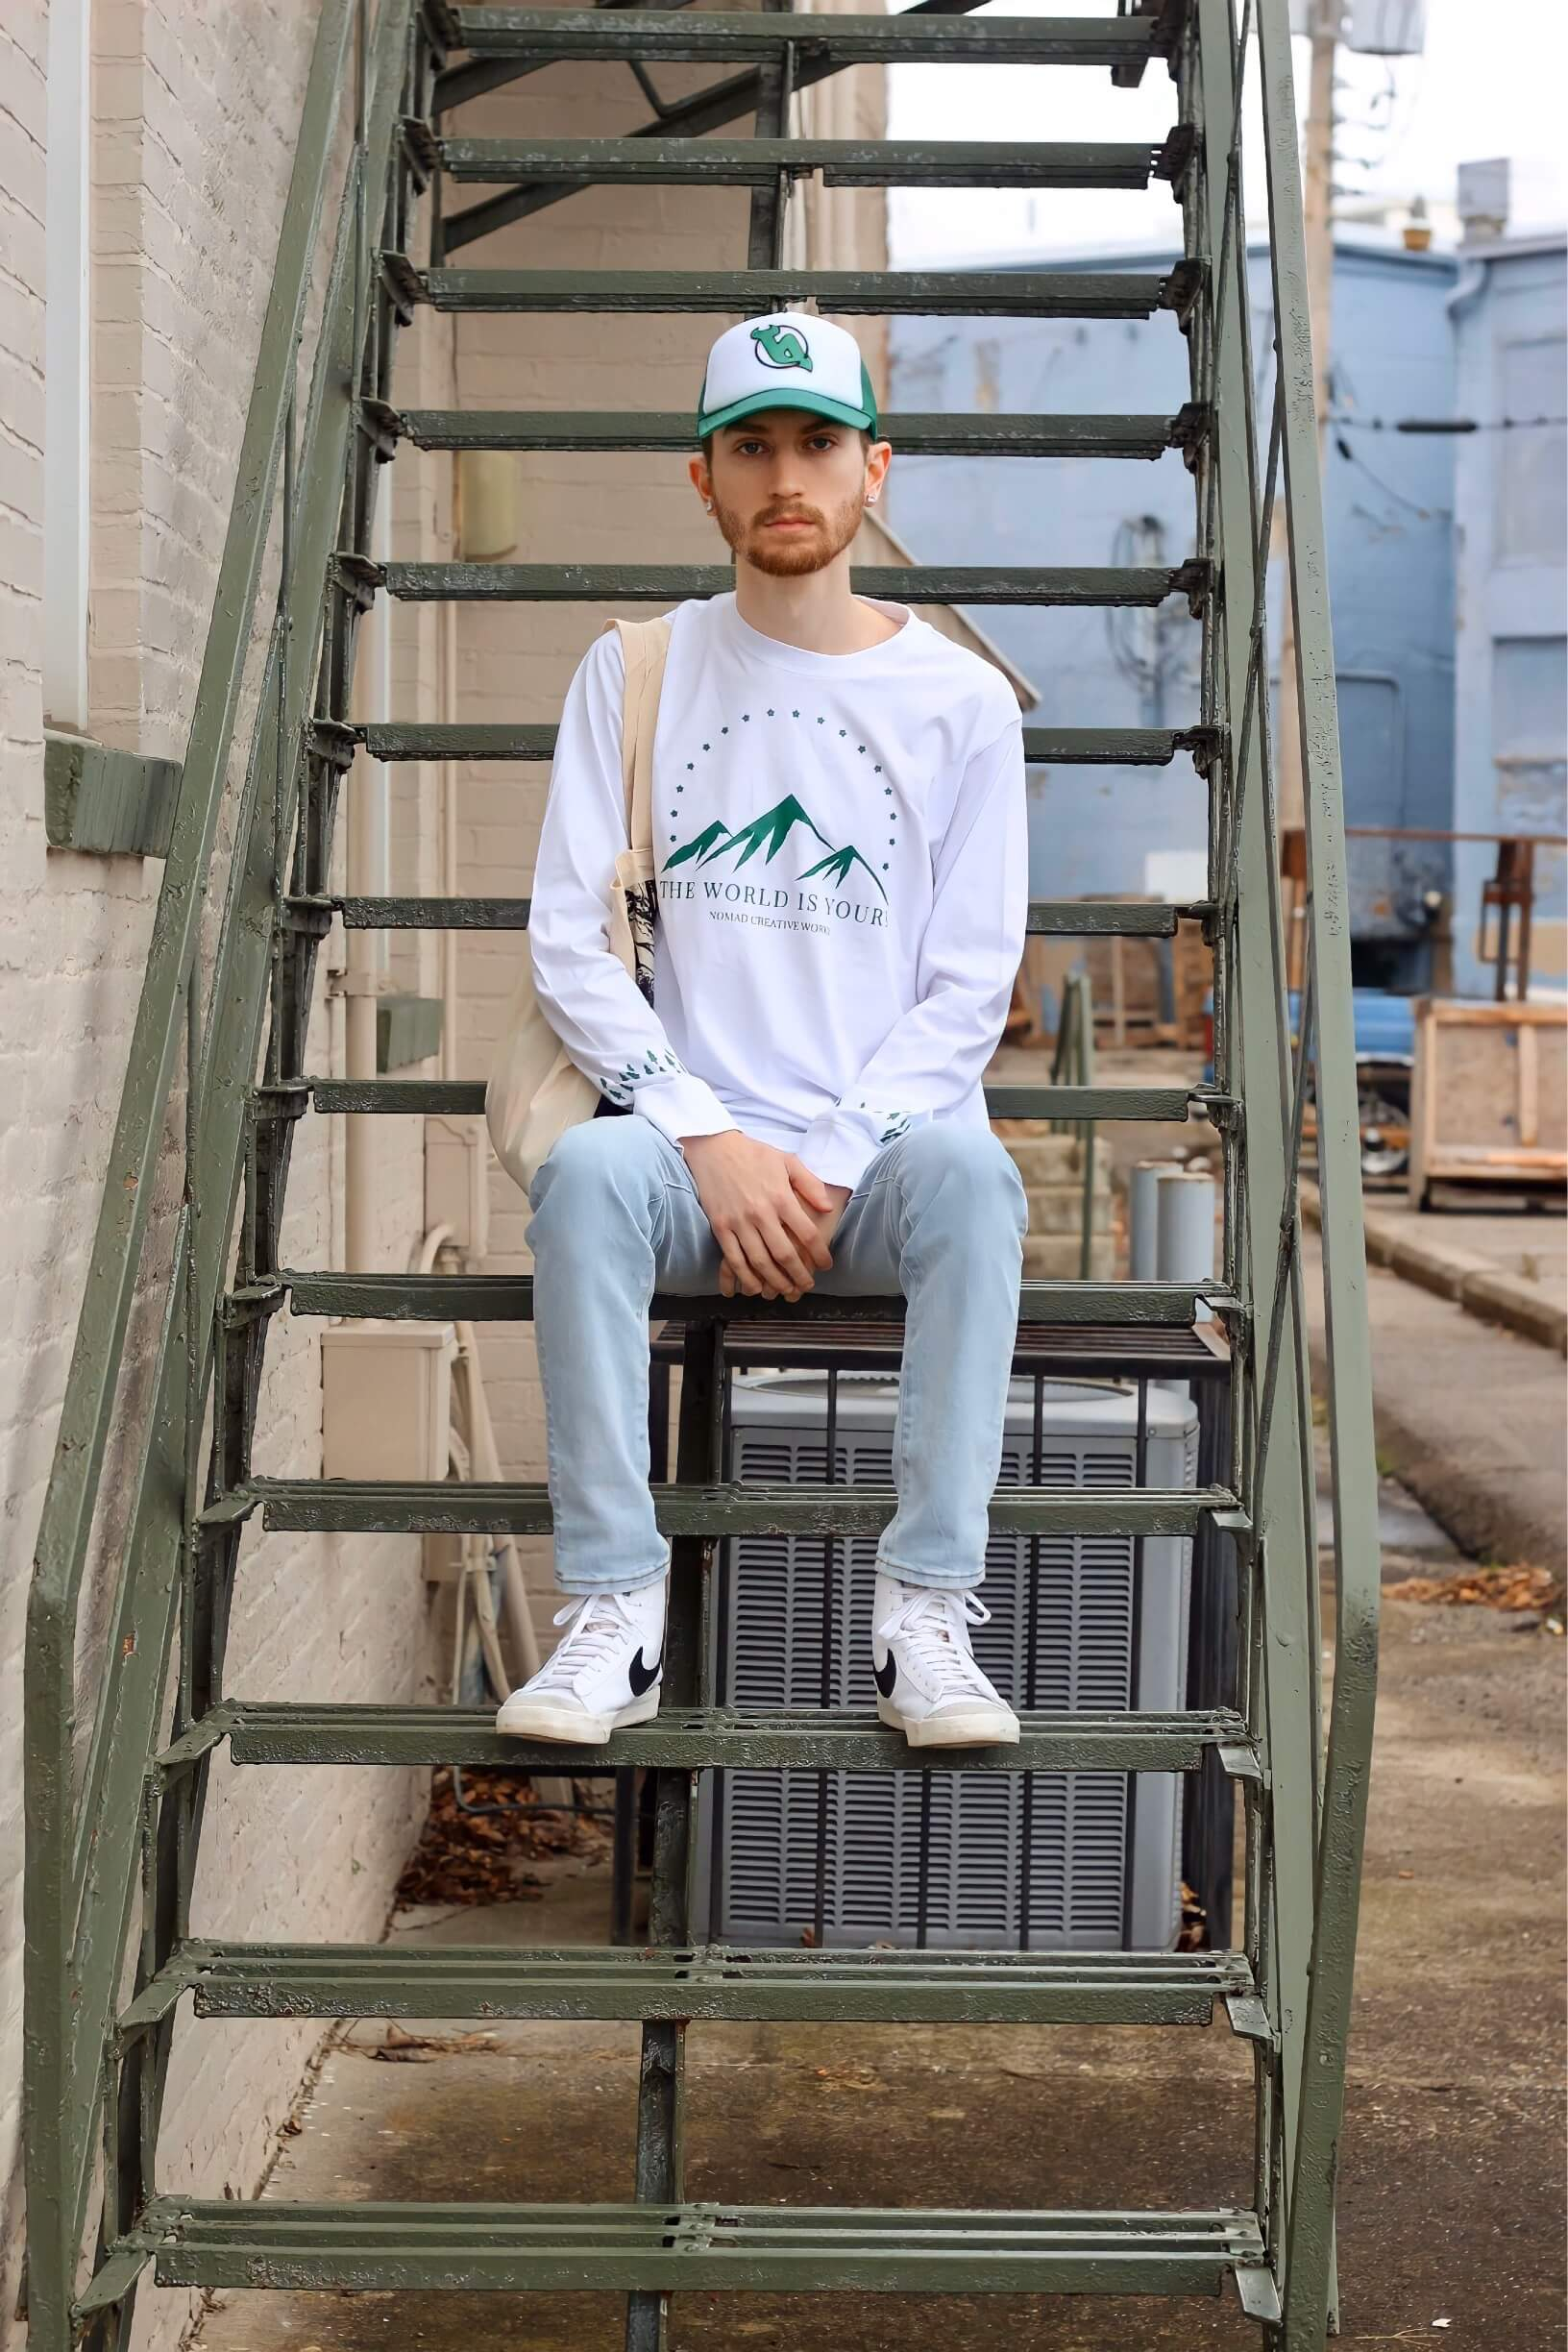 Aaron Seelig for Nomad Creative Works featuring the Mountain View Long Sleeve T-Shirt 3